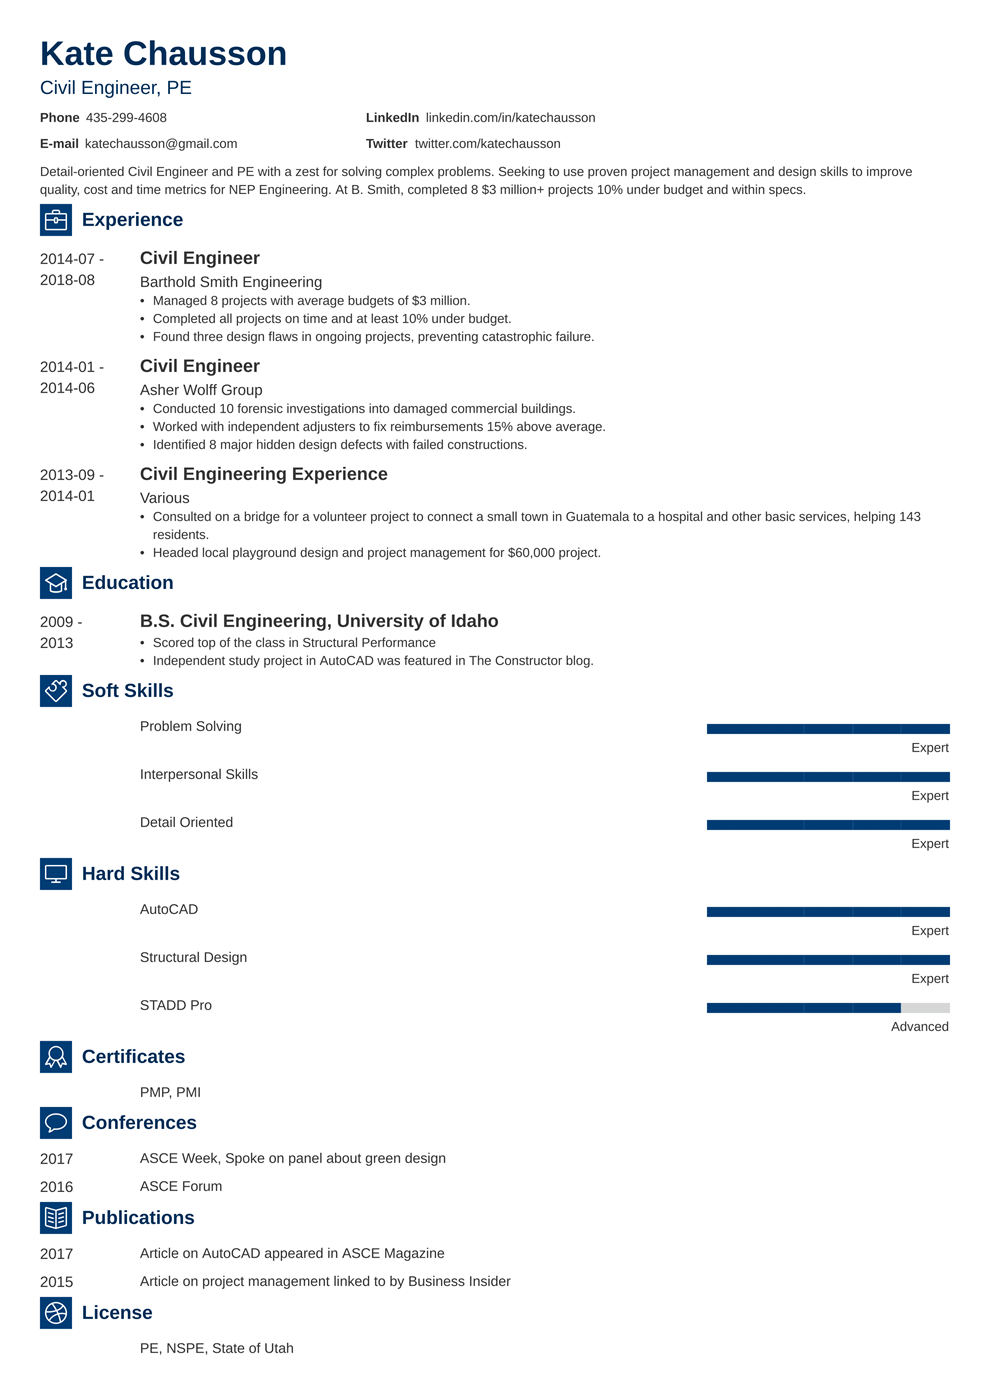 Civil Engineer Resume Examples & Guide (20+ Tips)